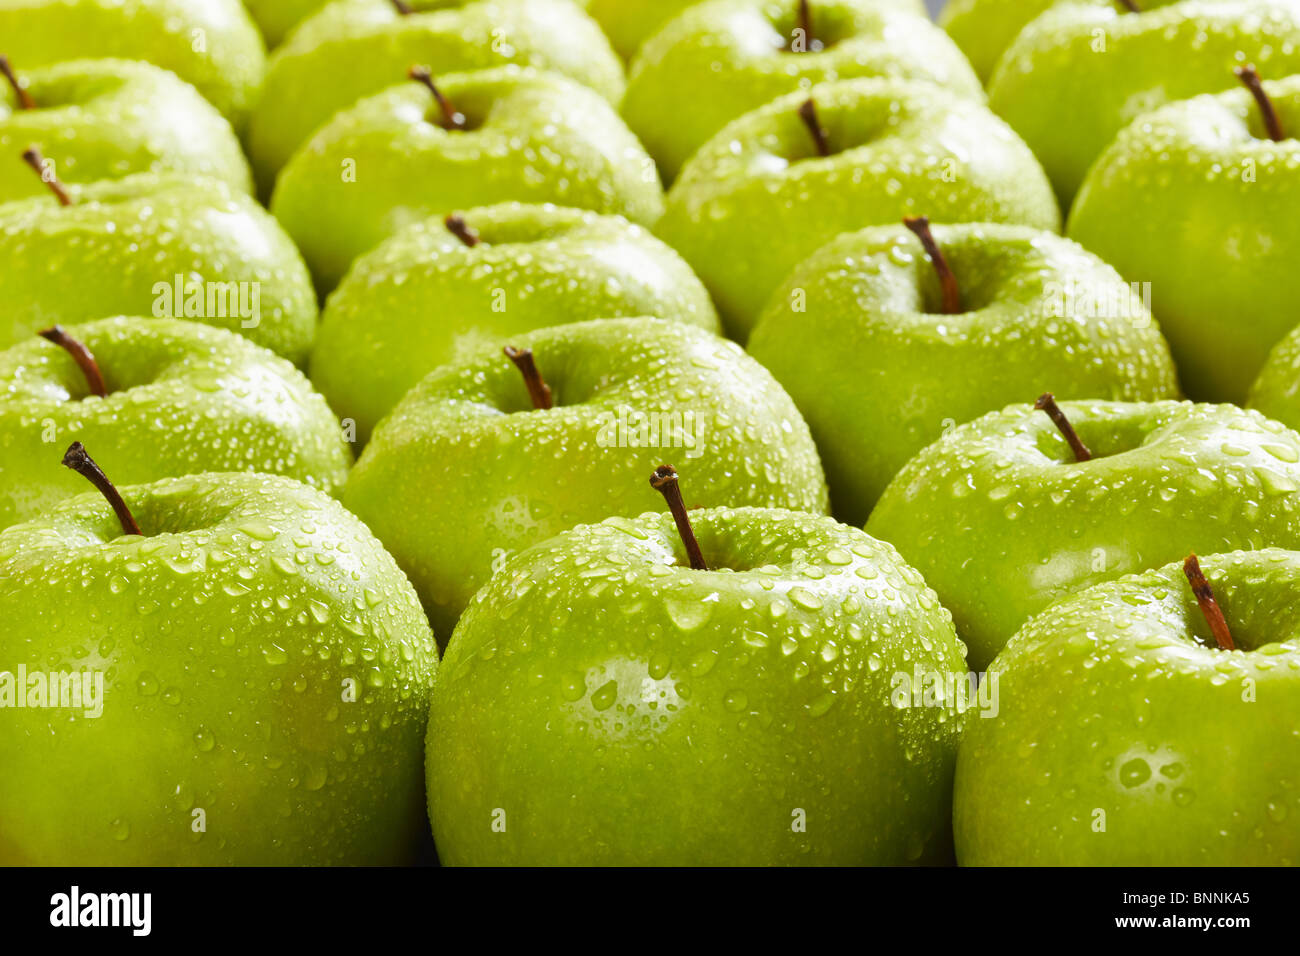 large group of granny smith apples in a row. Selective focus - Stock Image